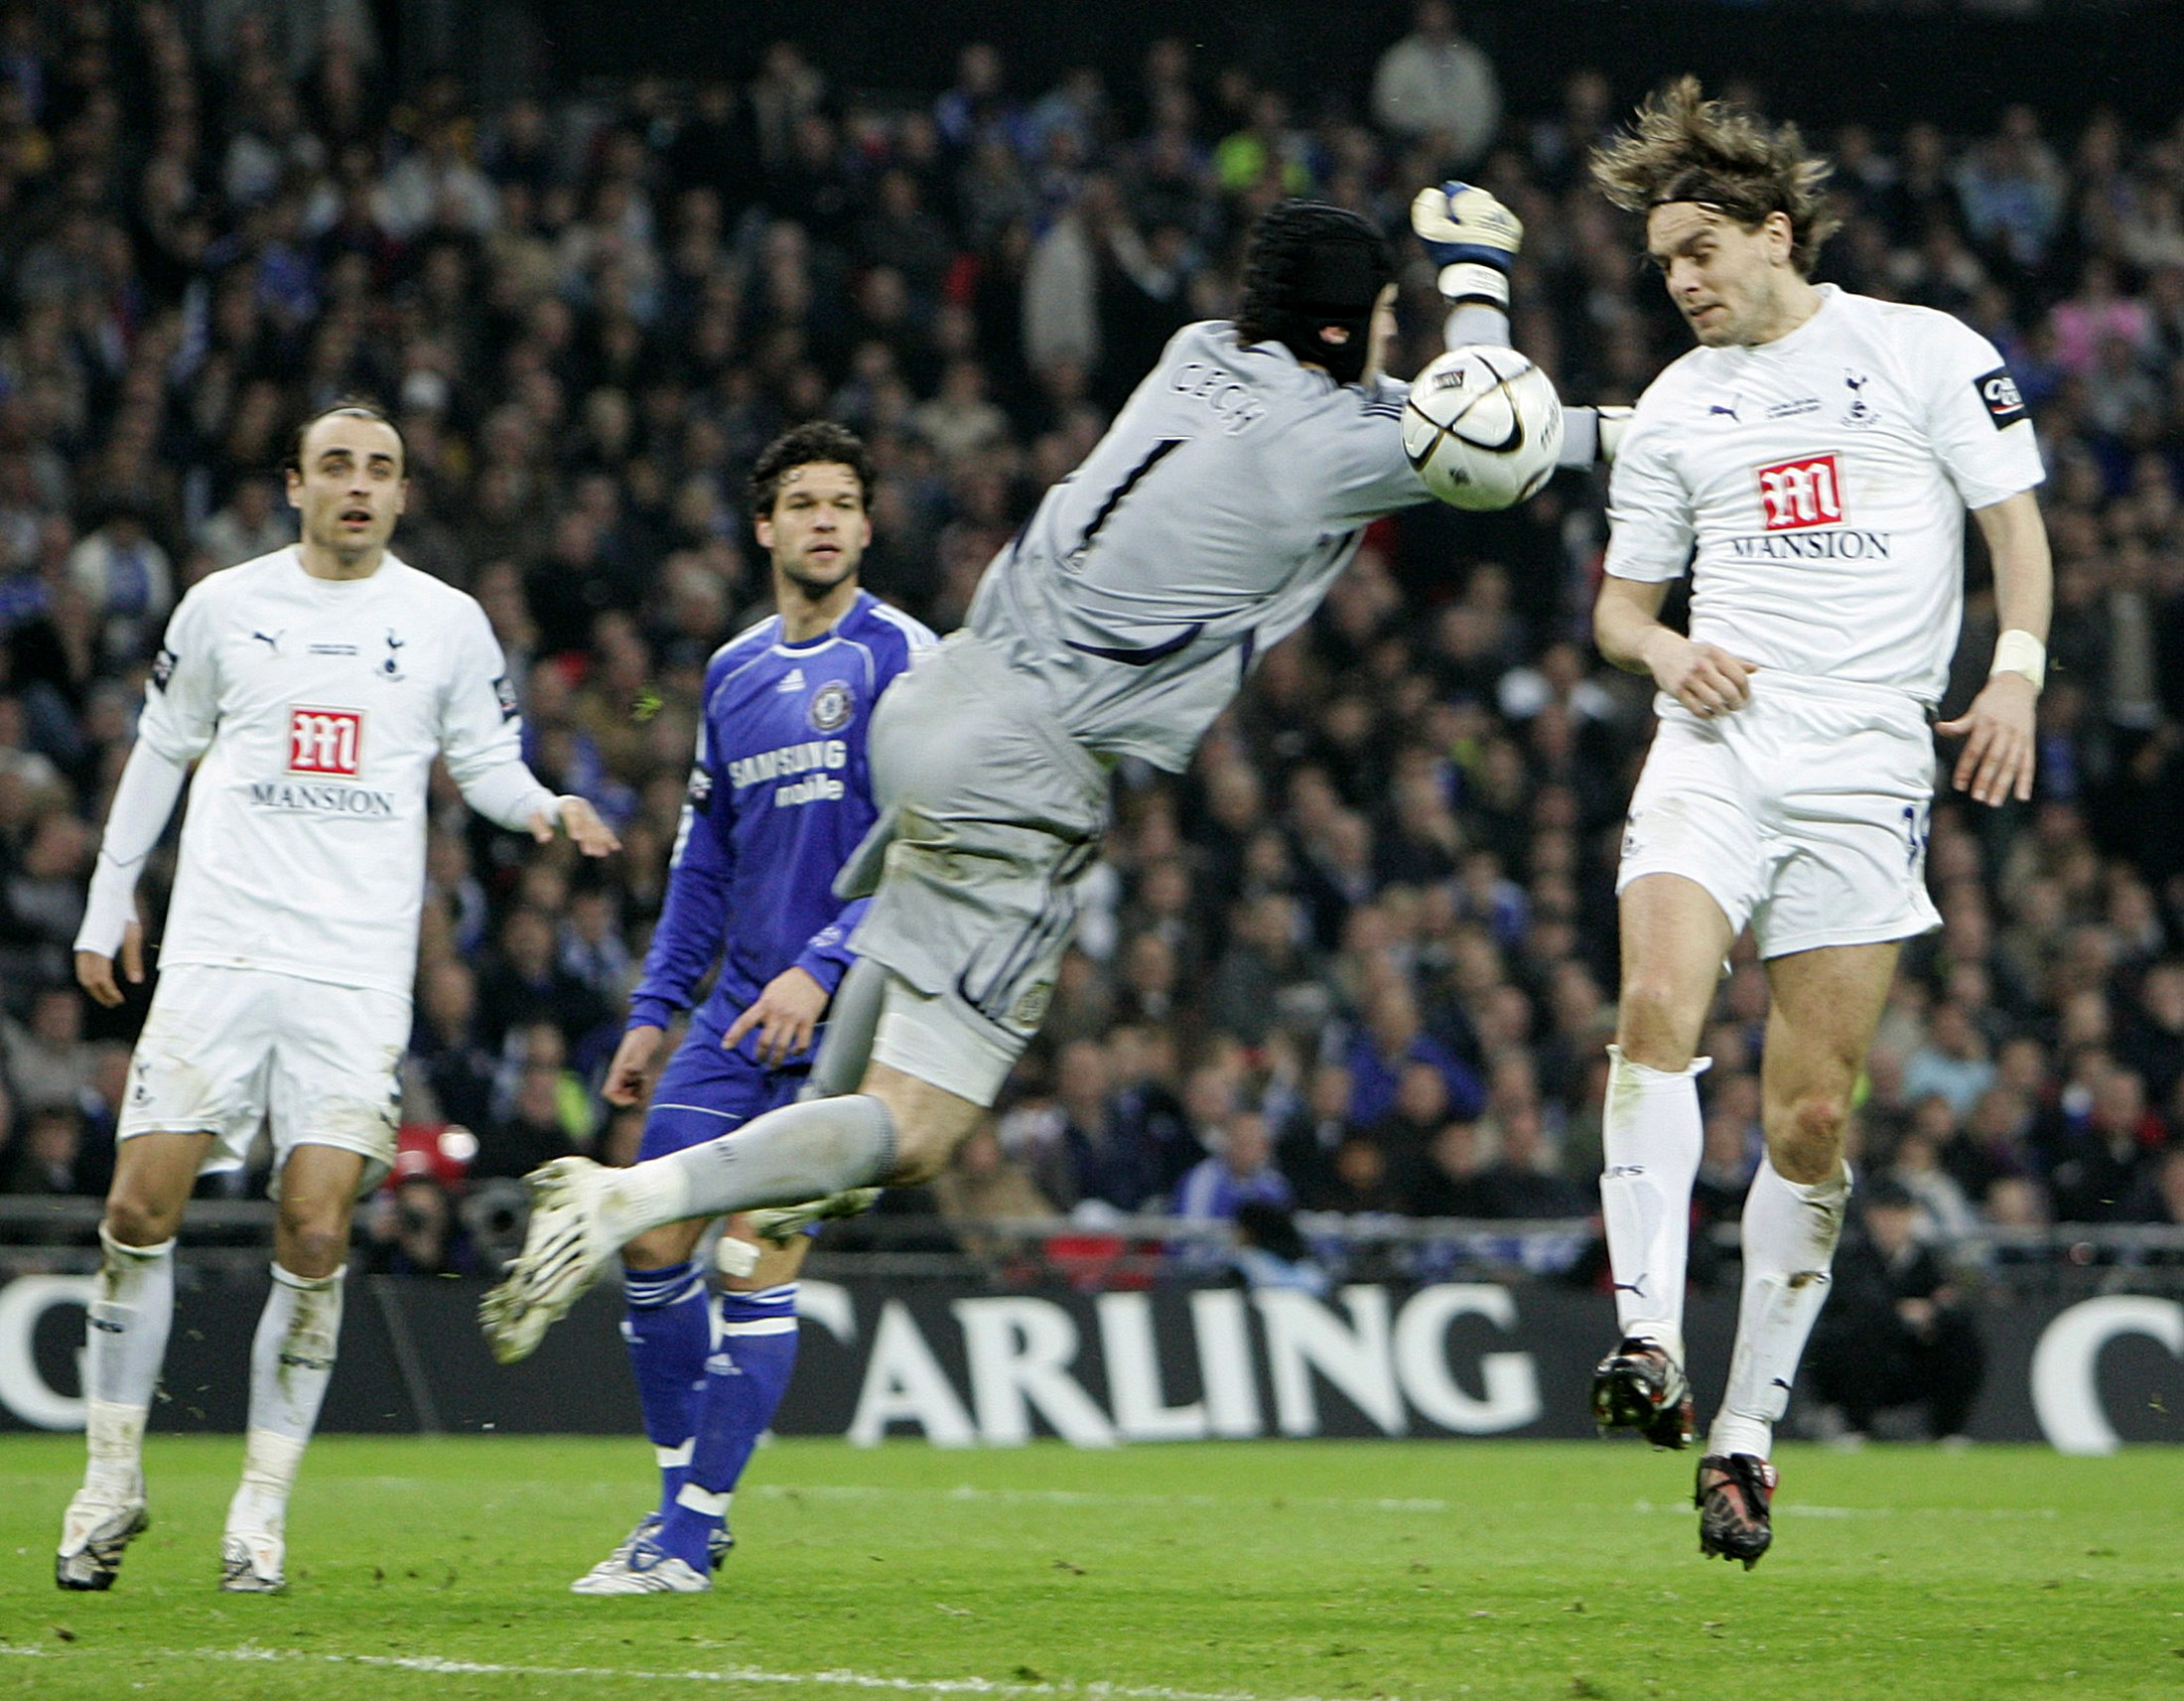 Tottenham Hotspur's Jonathan Woodgate, right, scores past Chelsea's Petr Cech during their Carling Cup final soccer match at Wembley Stadium in London...